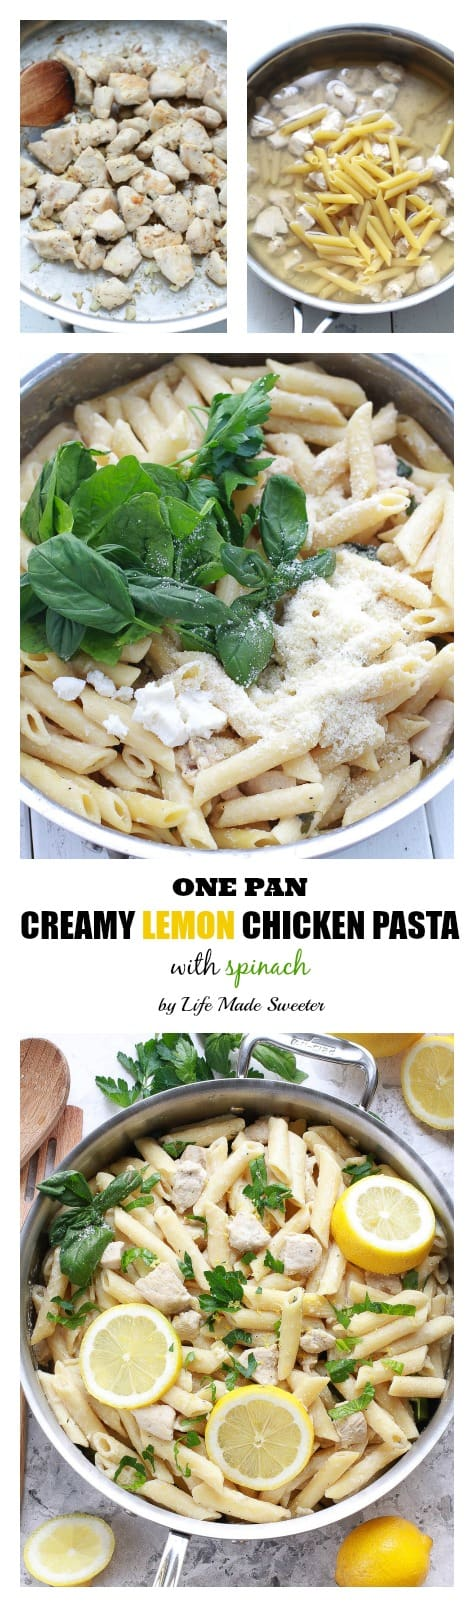 Creamy Lemon Chicken One-Pan Pasta makes the perfect weeknight meal made all in one pot in under 25 minutes.